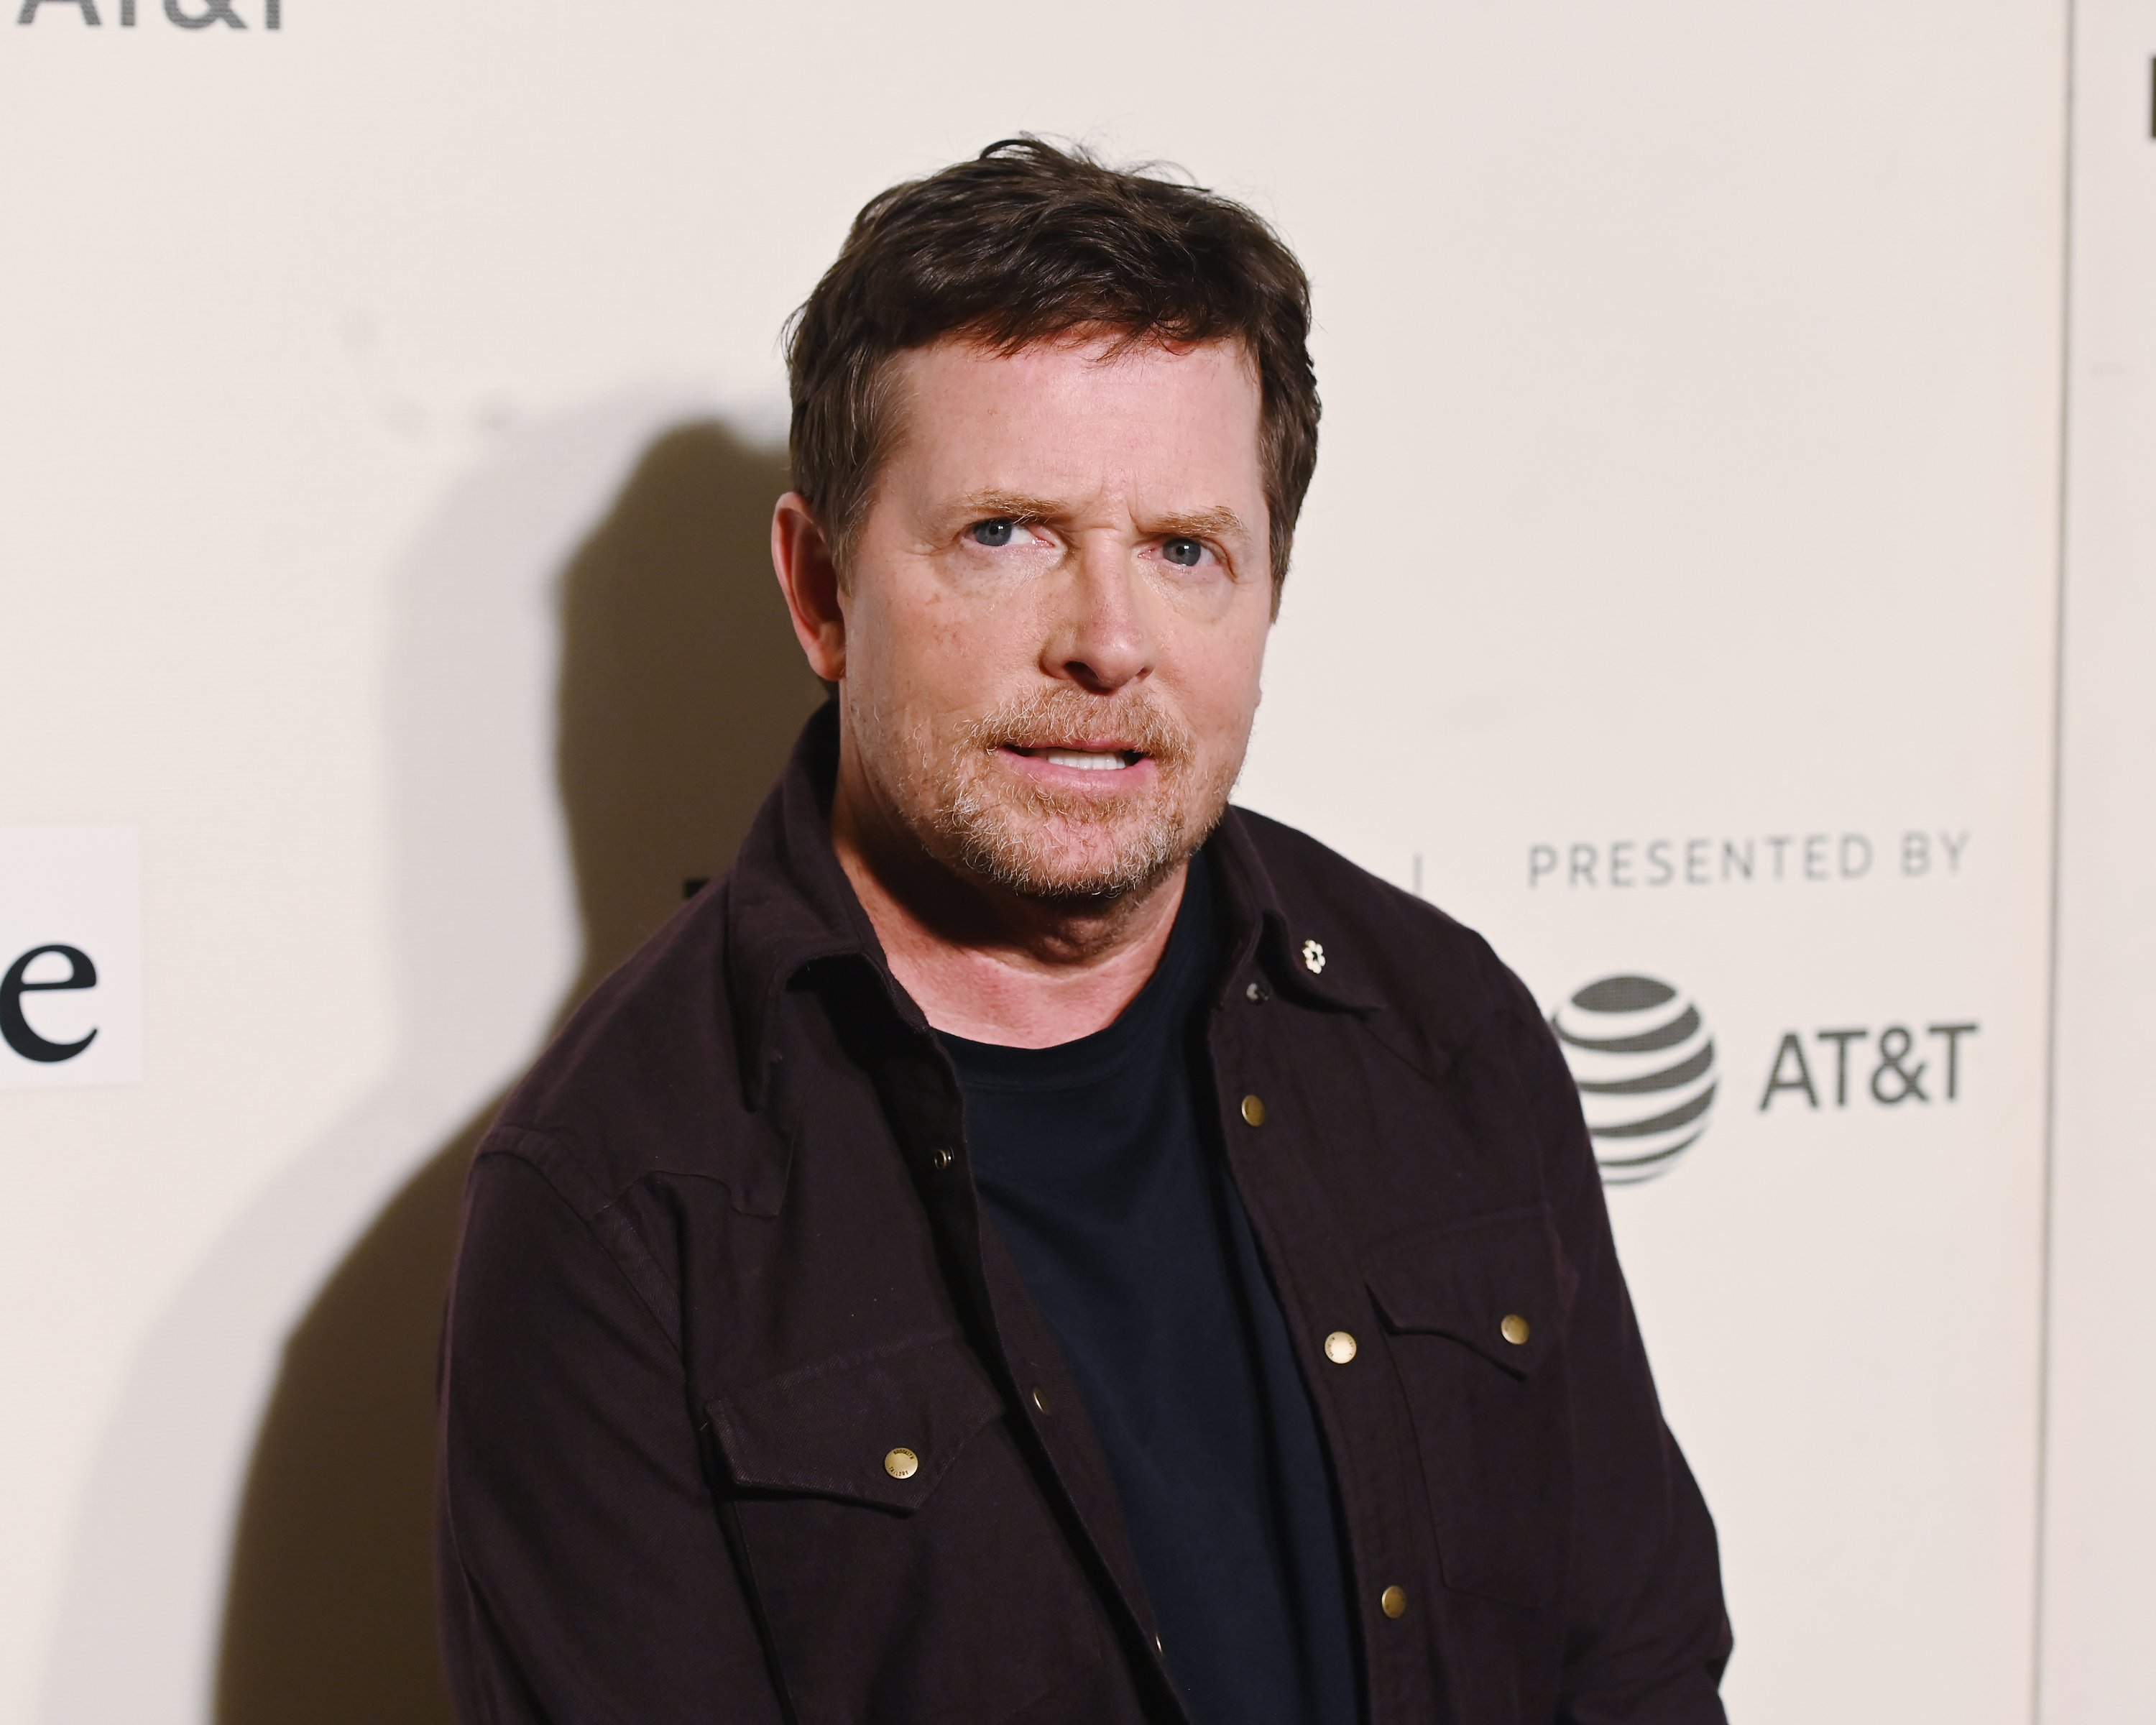 Michael J. Fox attends red carpet for the Tribeca Talks - Storytellers - 2019 Tribeca Film Festival at BMCC Tribeca PAC on April 30, 2019. | Photo: GettyImages